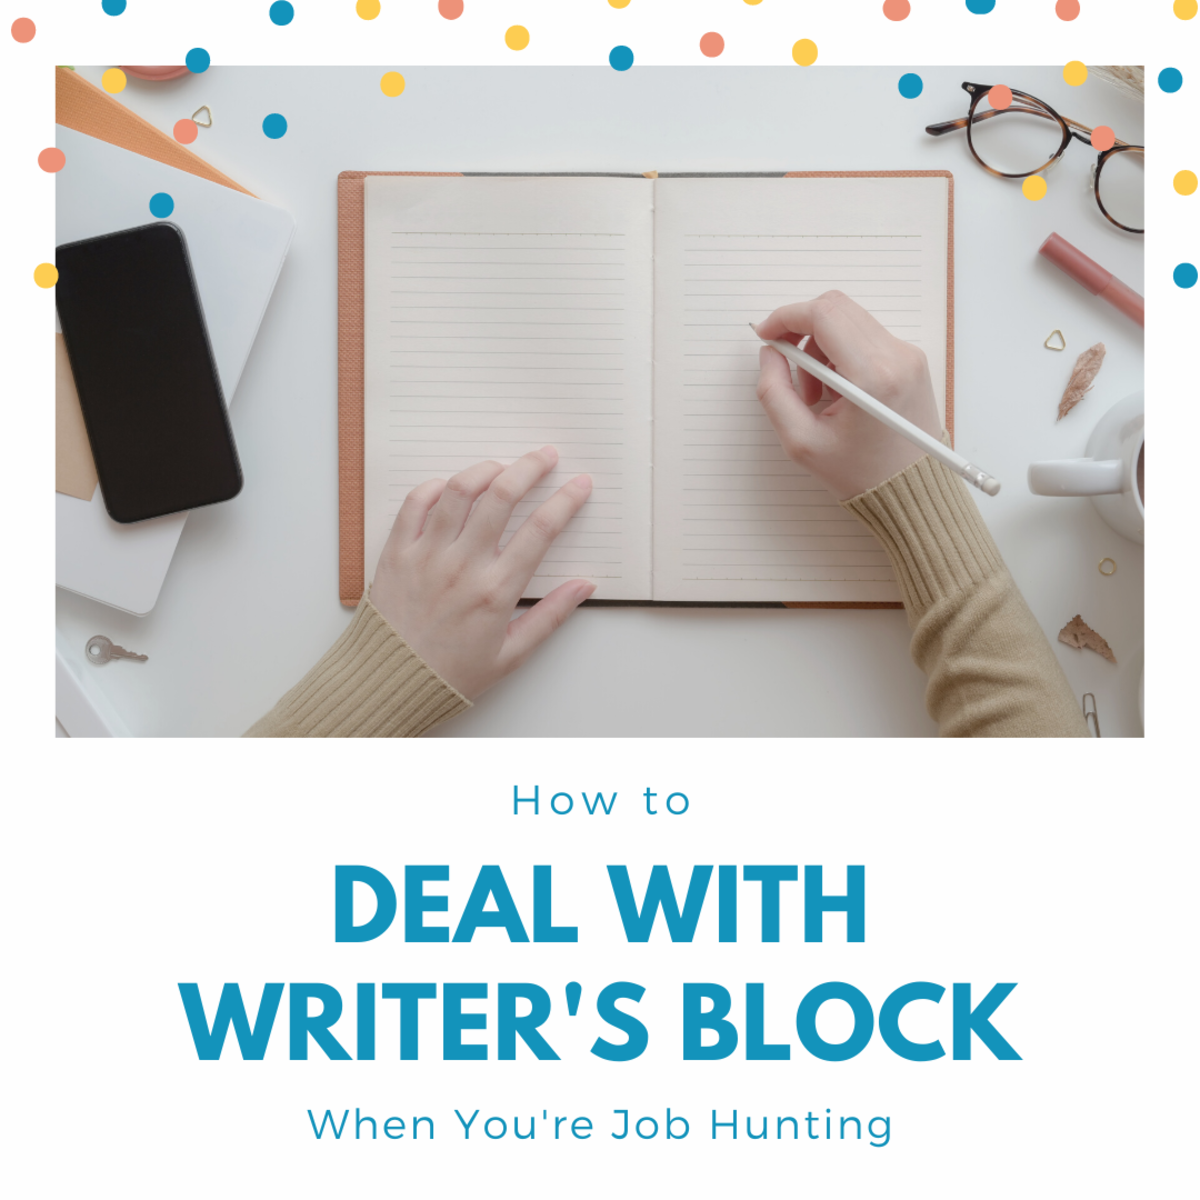 Learn how to overcome writer's block while looking for a job.